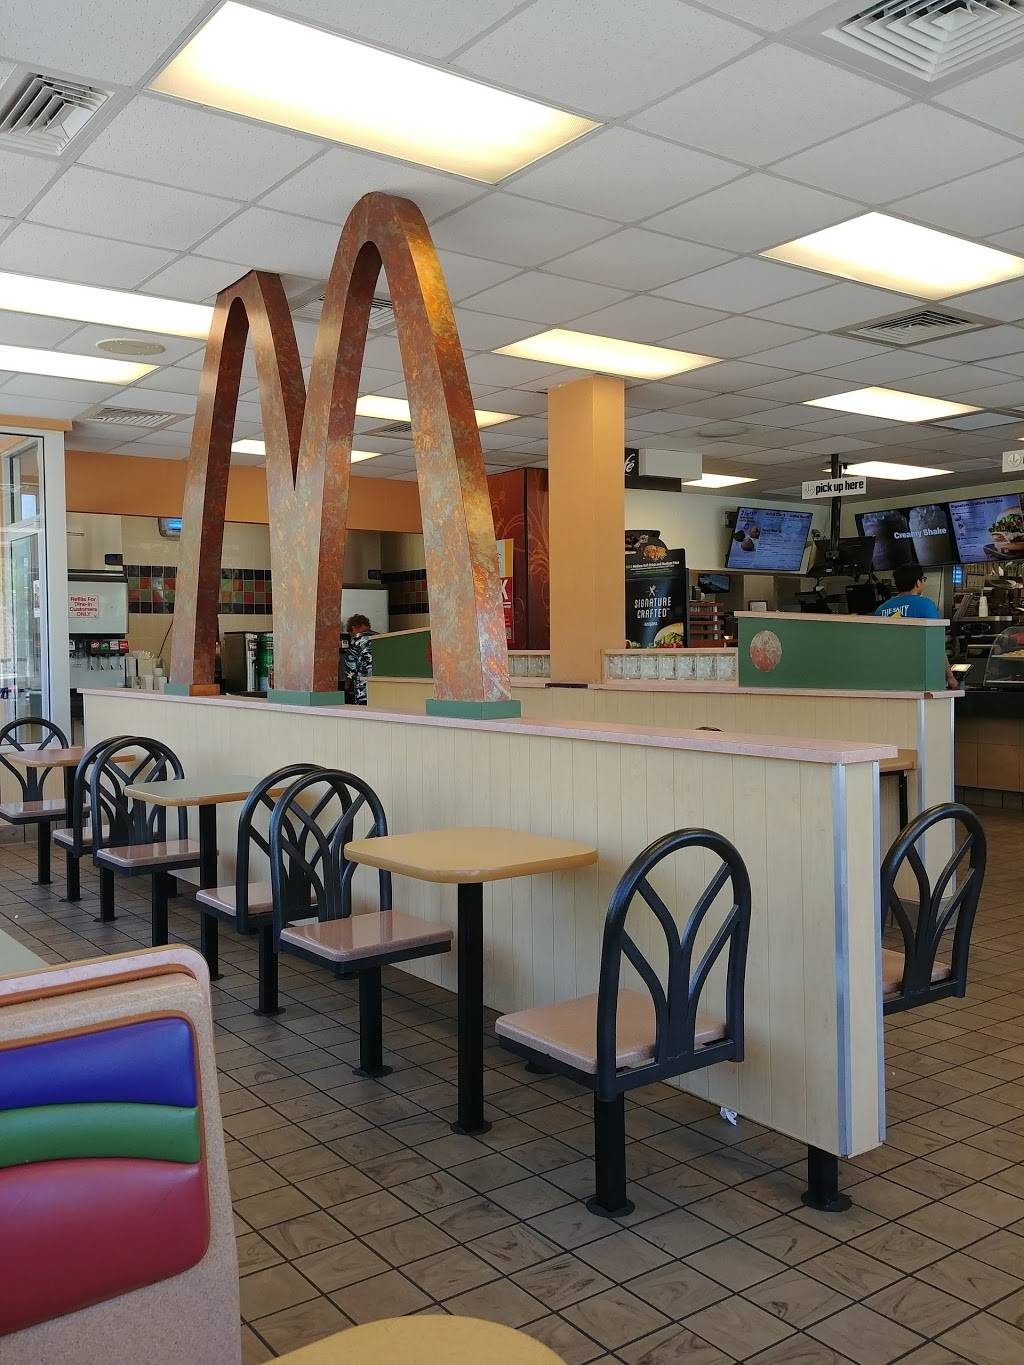 McDonalds | cafe | 627 N Western Ave, West Peoria, IL 61604, USA | 3096761633 OR +1 309-676-1633